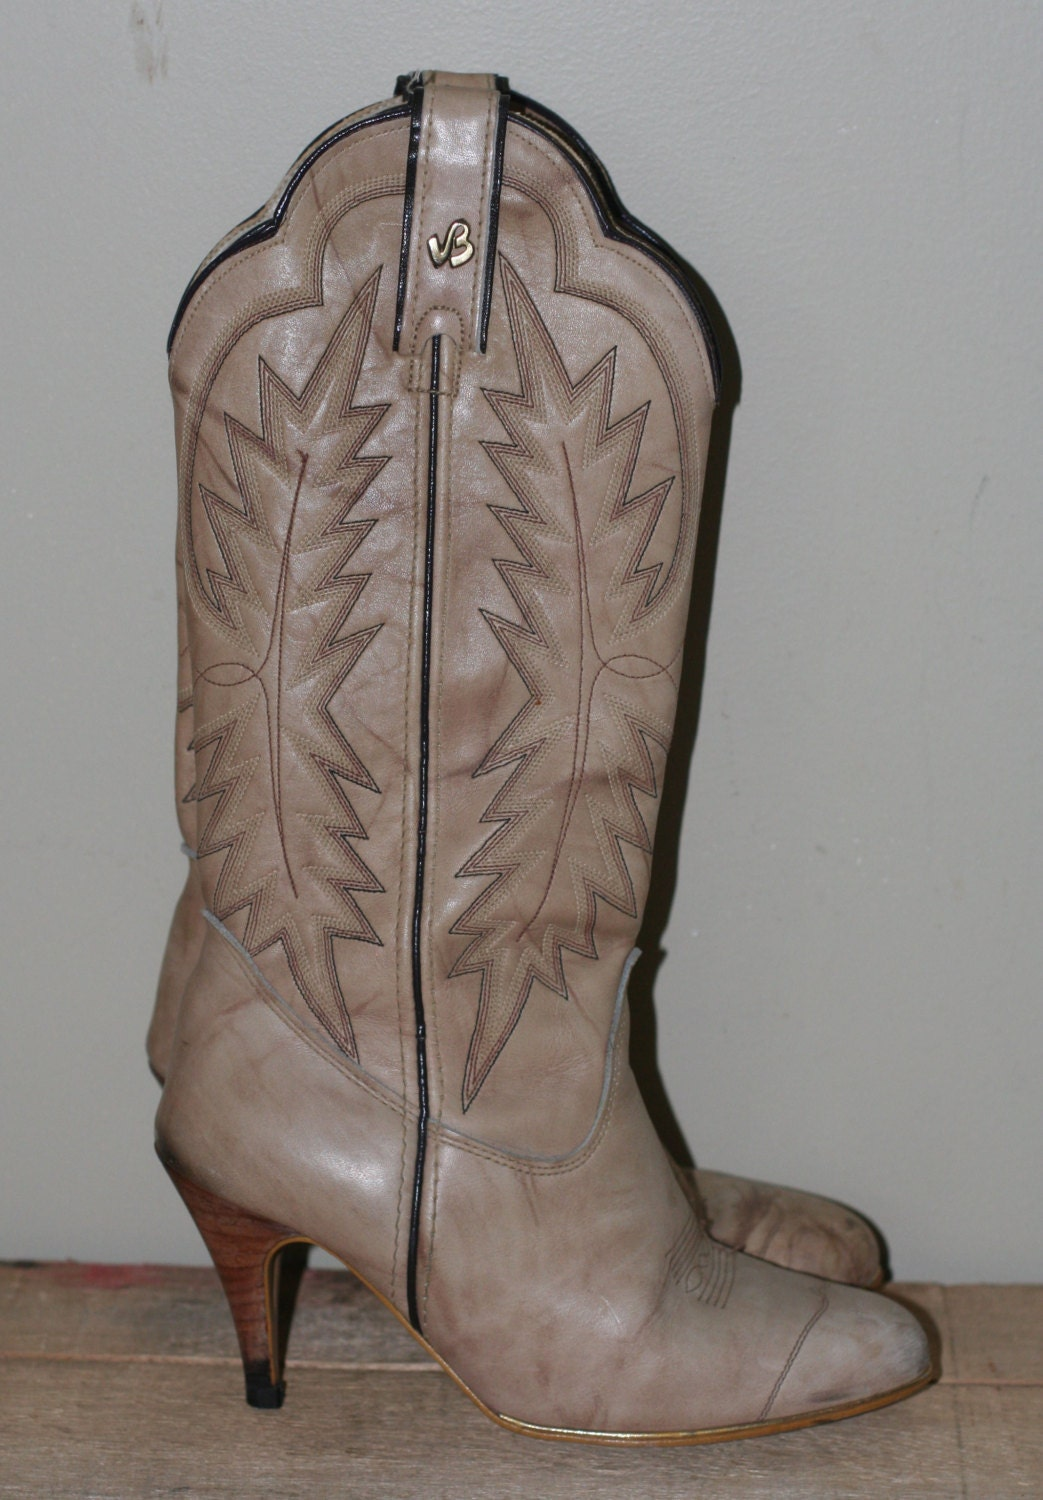 vintage s high heel cowboy boots by jeenz bootz size